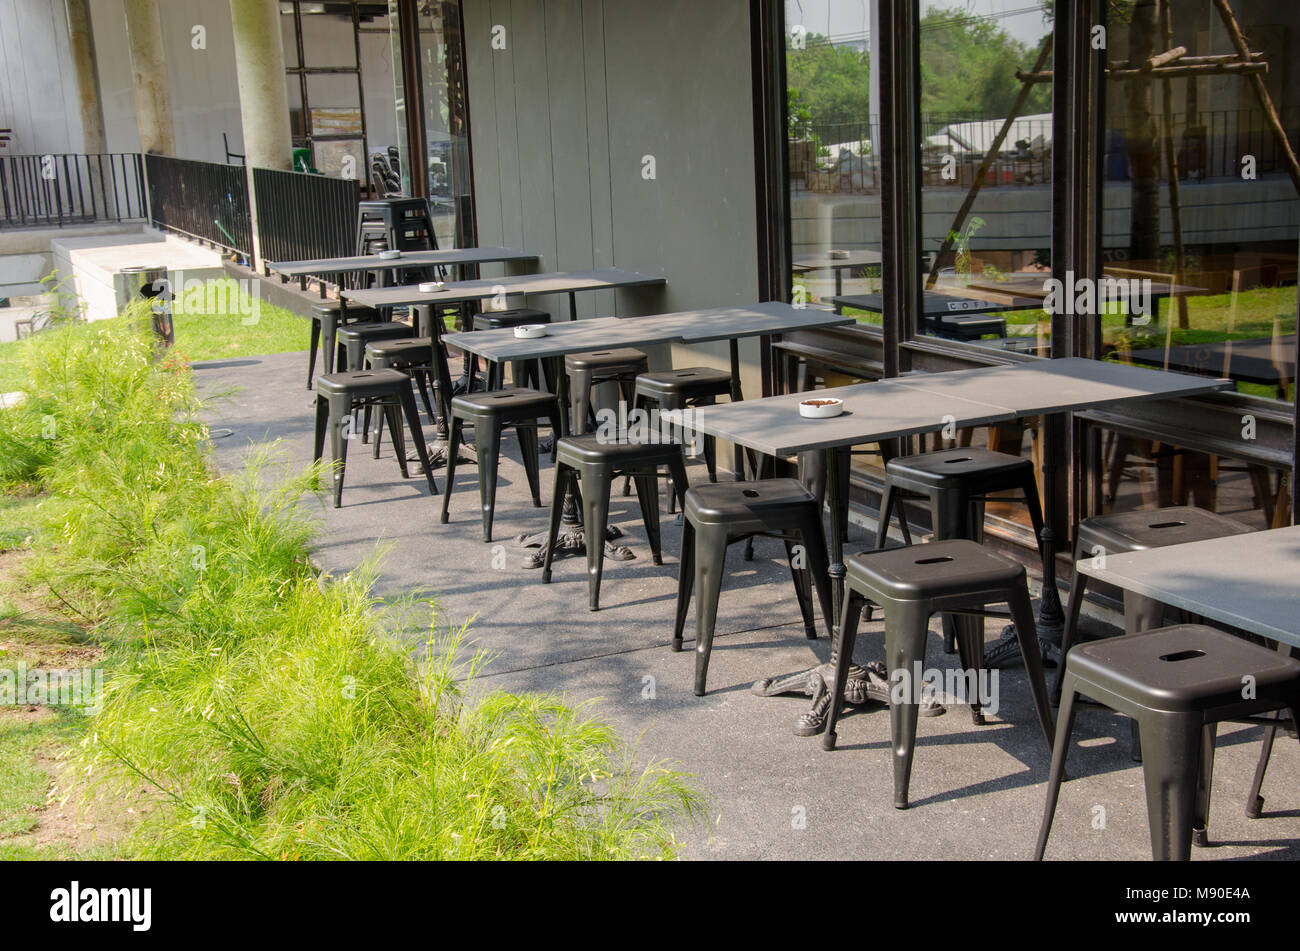 Chairs And Tables Outside The Coffee Shop   Stock Image